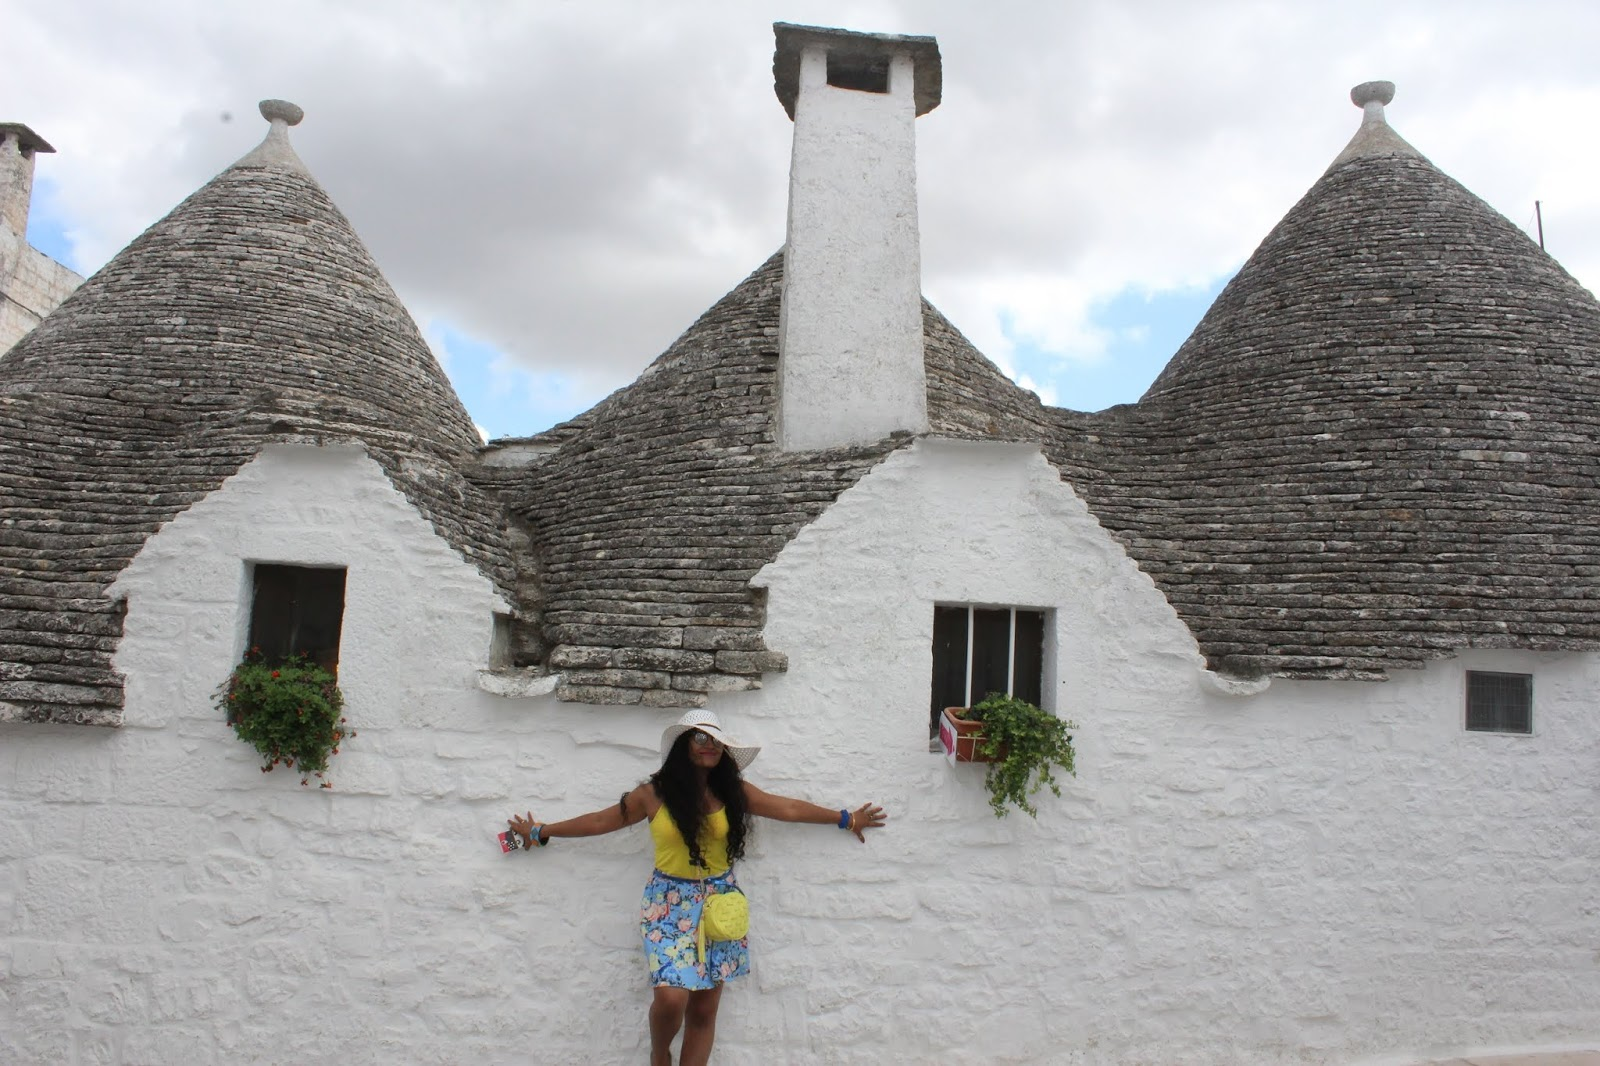 trulli houses for rent, trulli houses for sale, trulli italy images, trulli puglia images, how are trulli houses built, puglia, trulli with pool, trulli inside